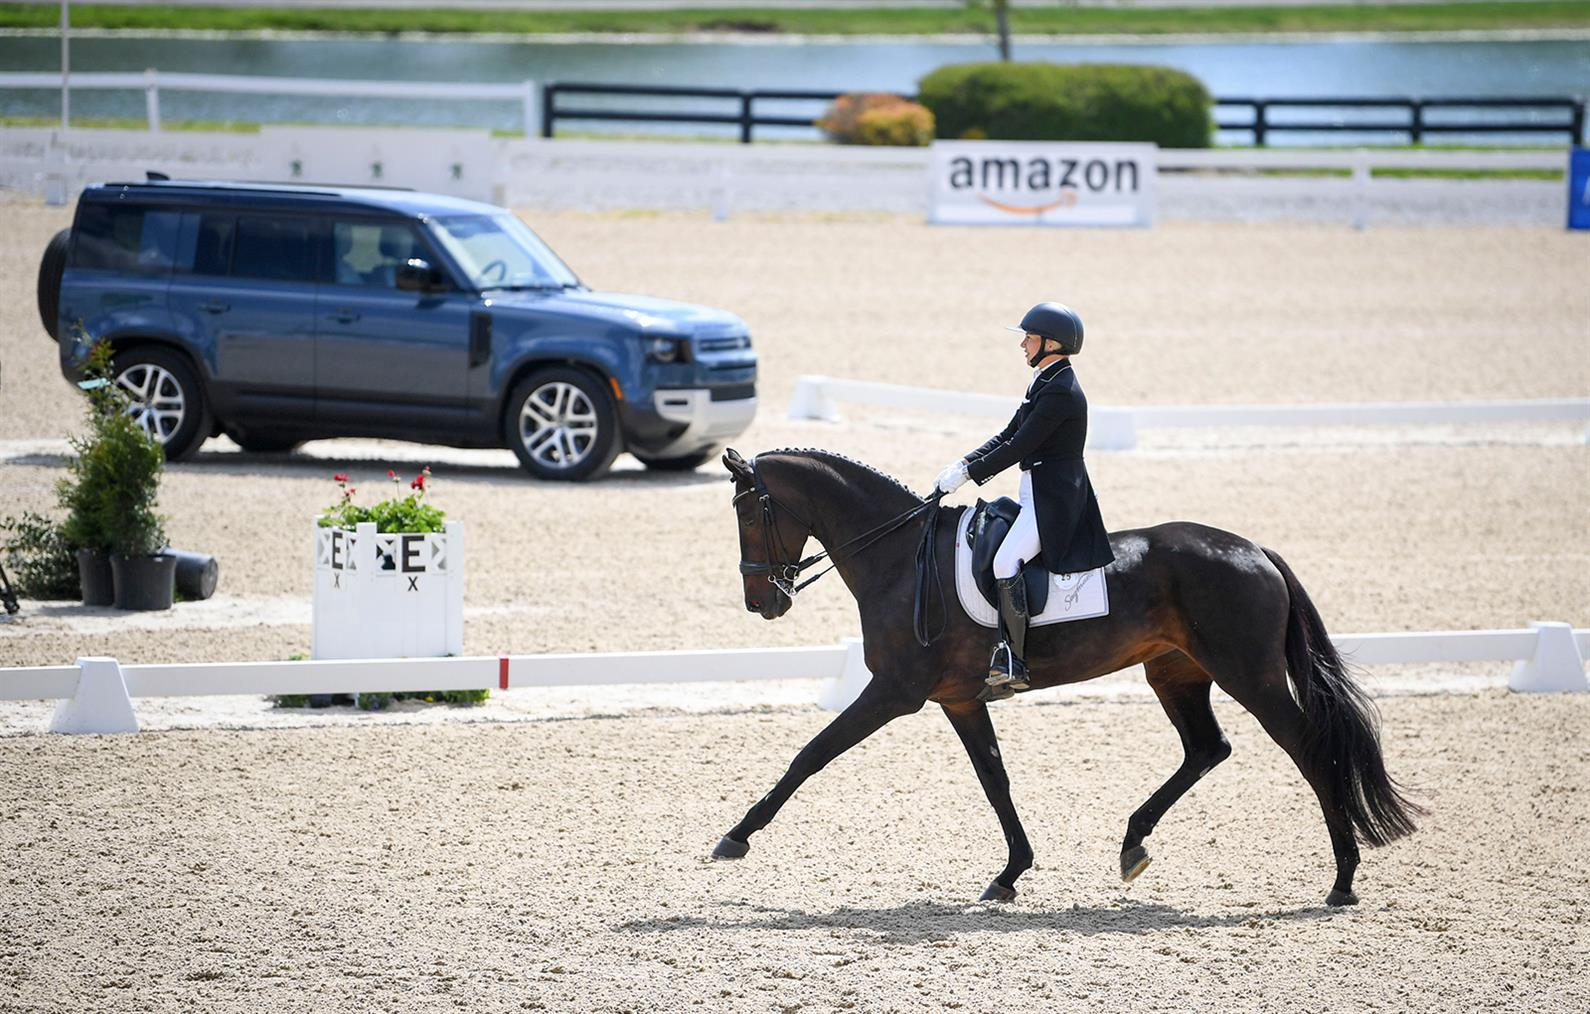 Marilyn Little and RF Scandalous competing in dressage